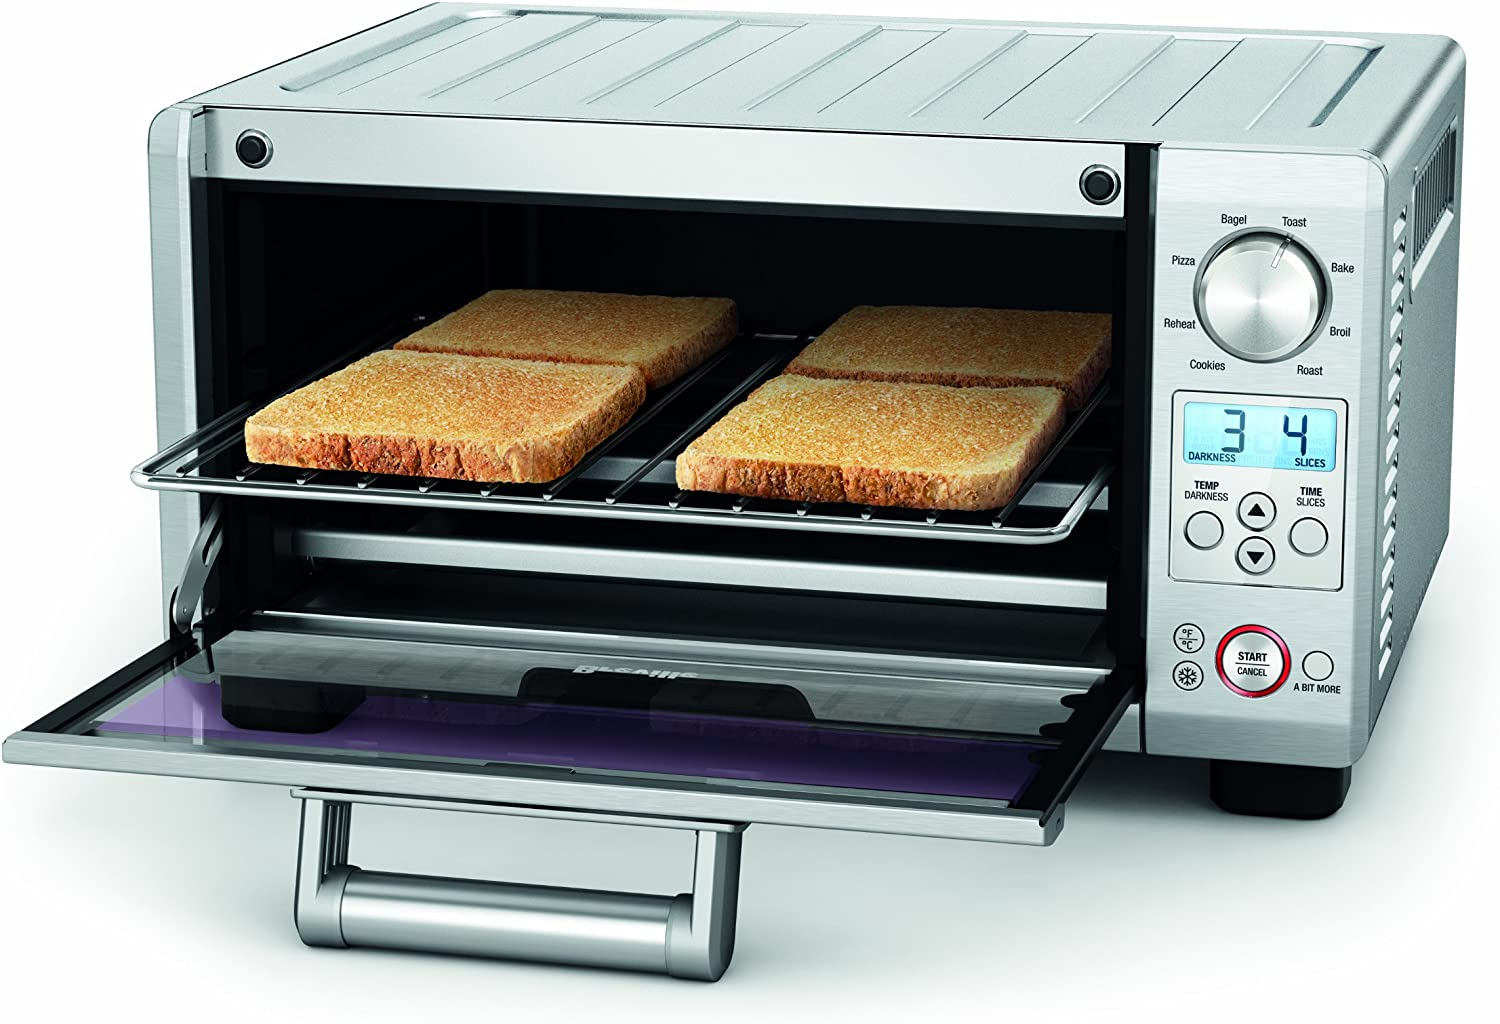 What is the best toaster oven 2021 - Breville Mini Smart Toaster Oven